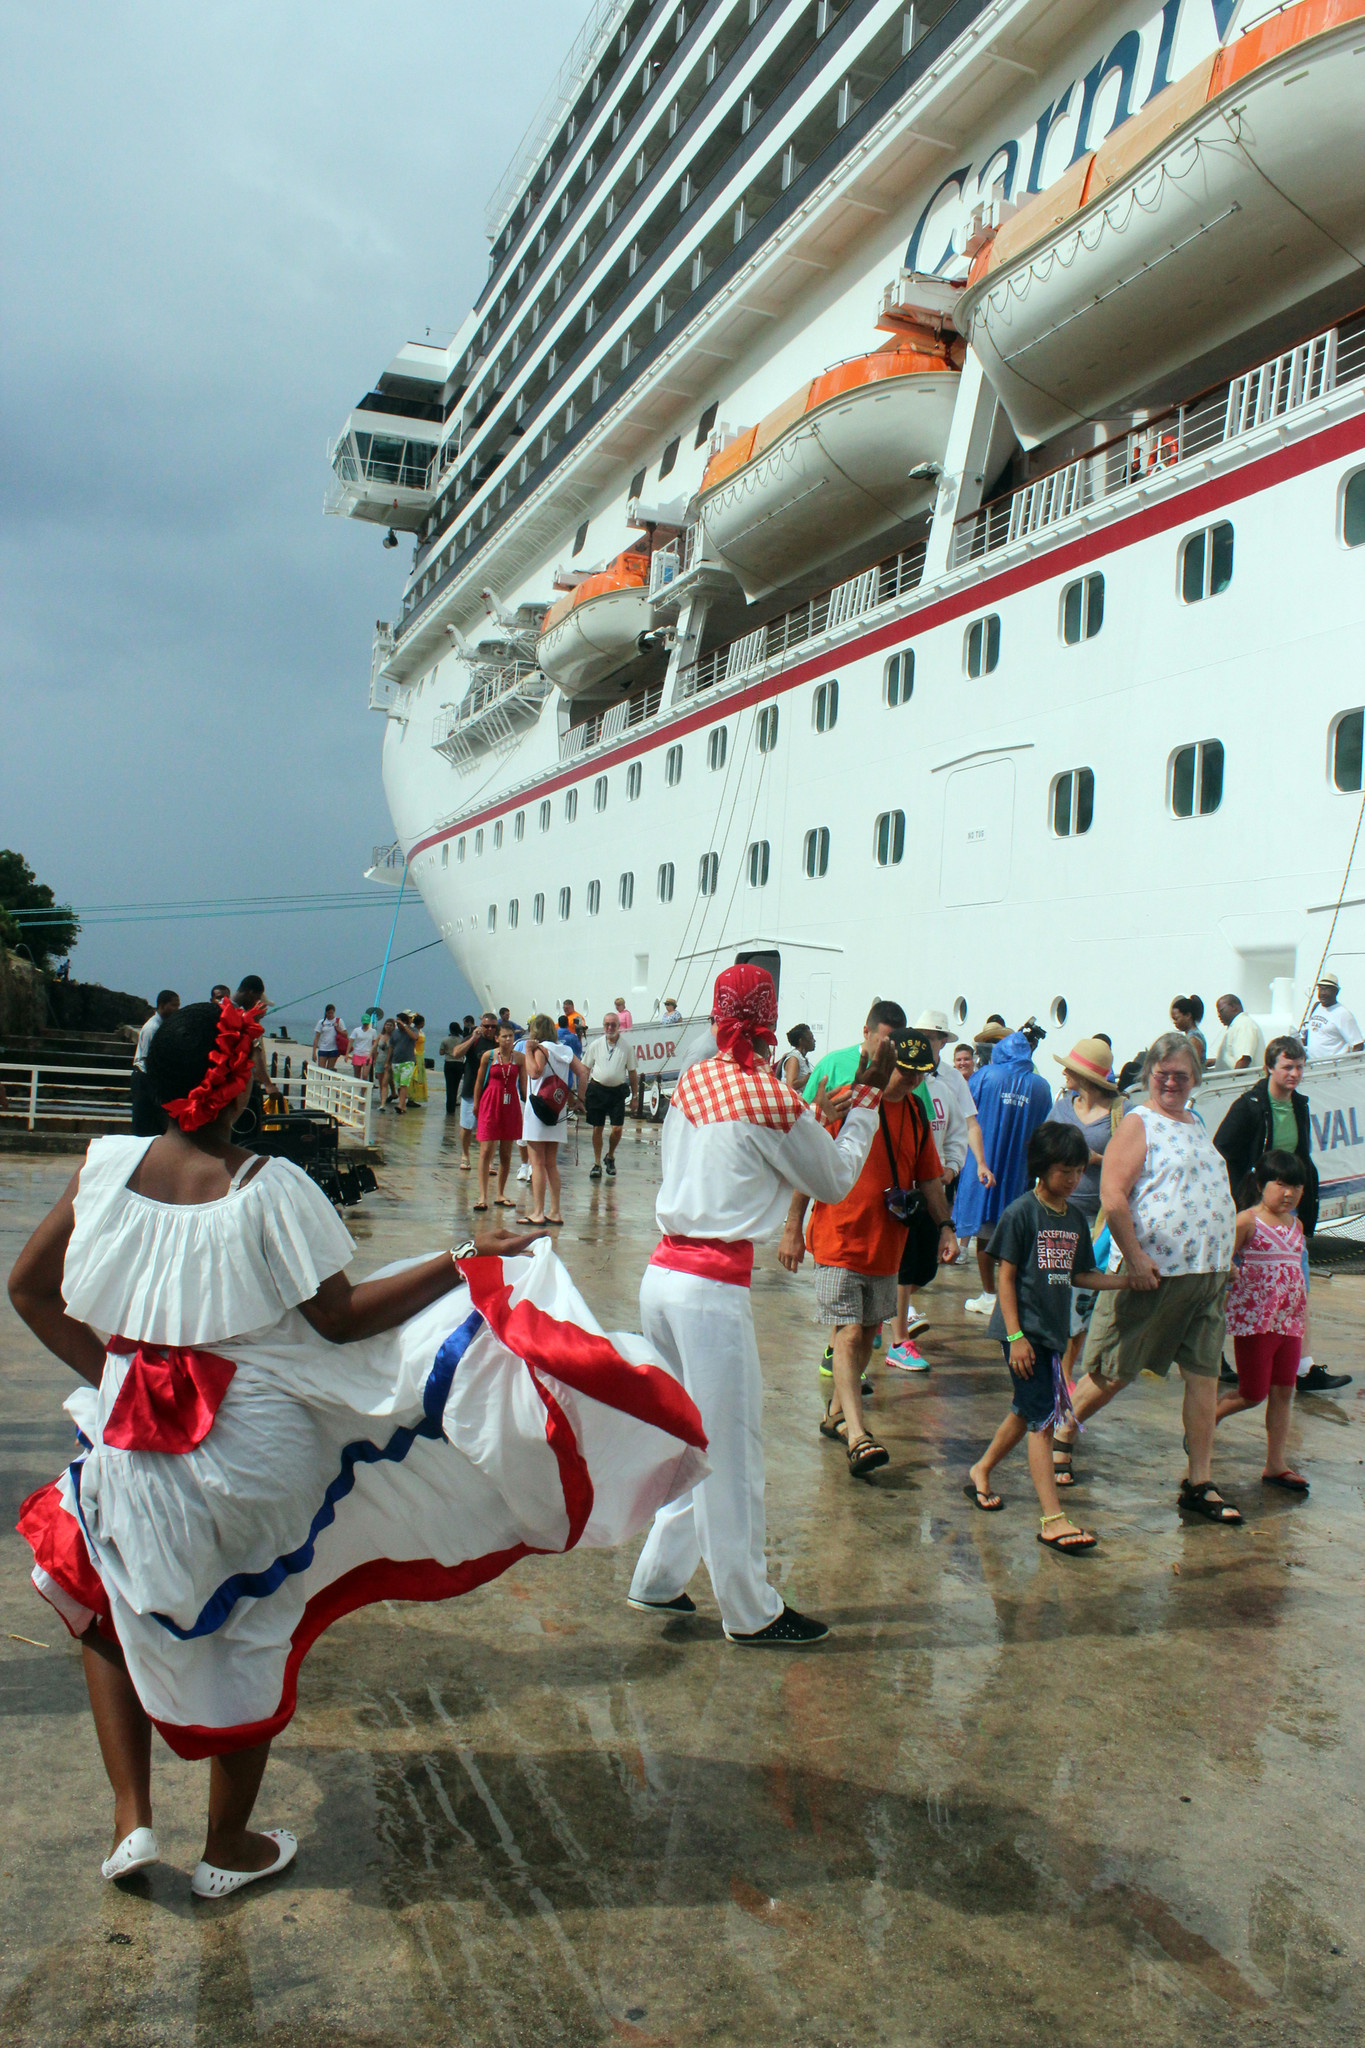 Pictures: Unique cruise ports - Cruise ports: La Romana, Dominican Republic.